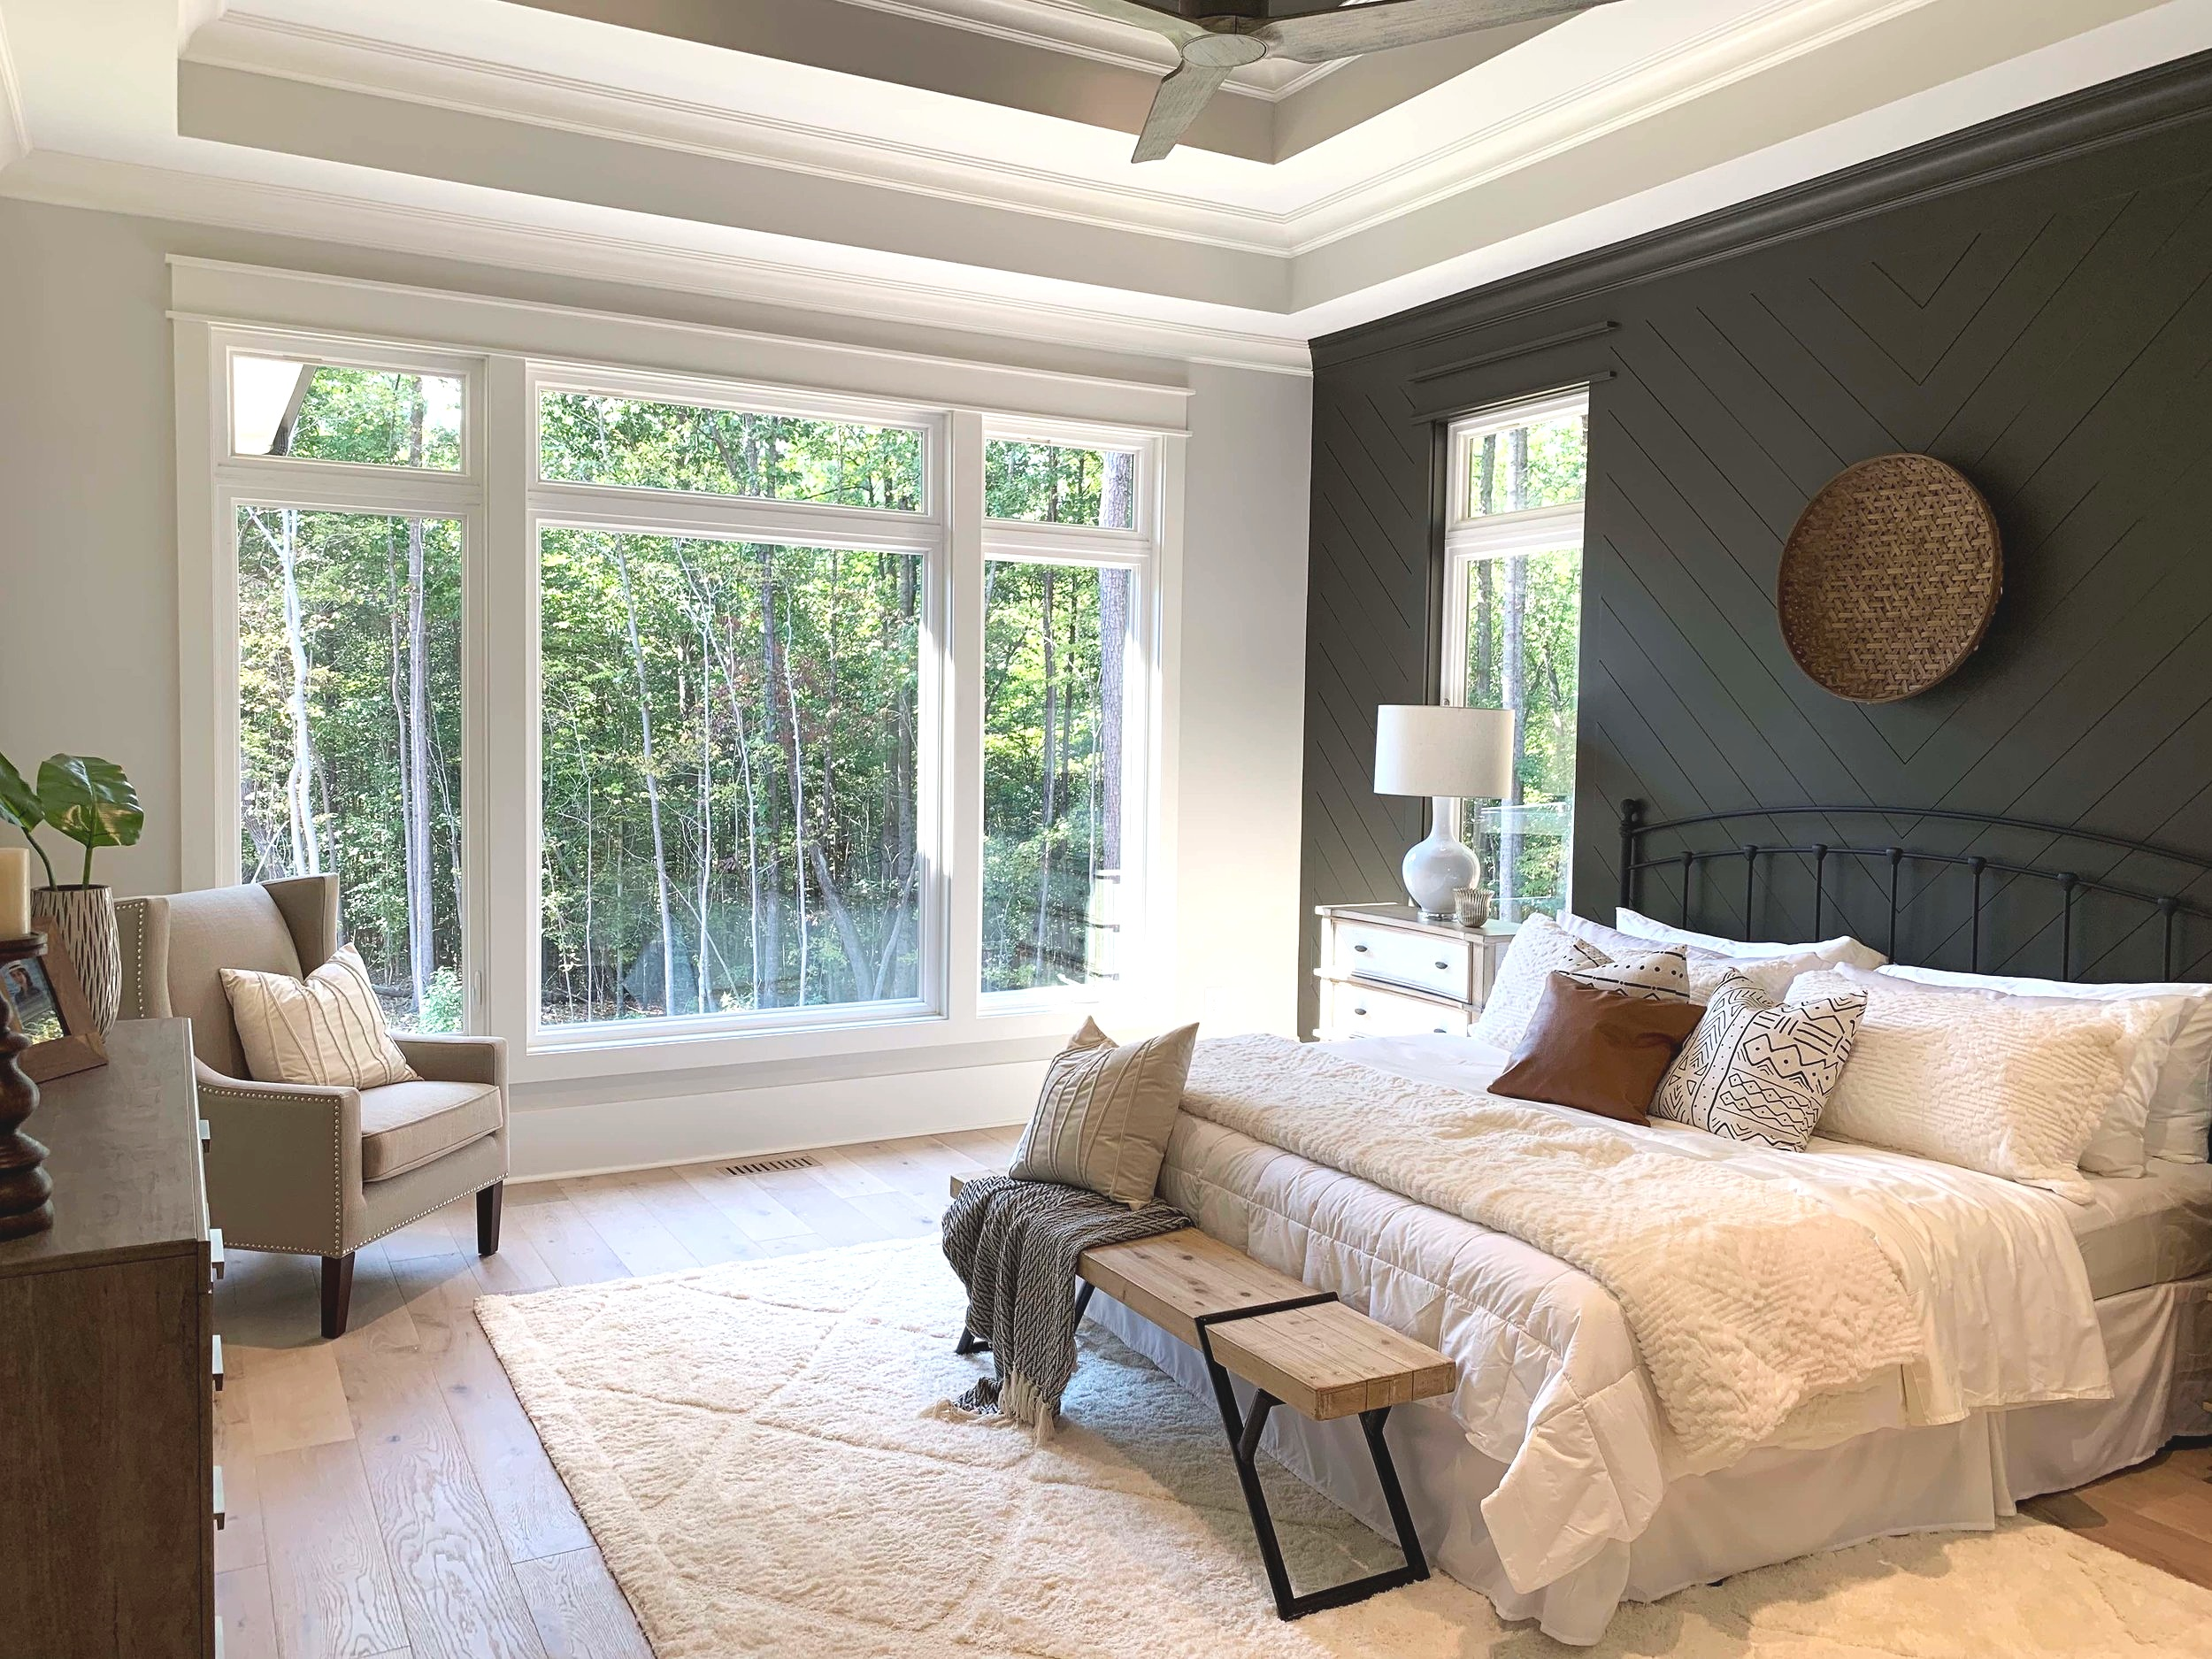 Master bedroom with large windows and accent wall.  Dark paint color.